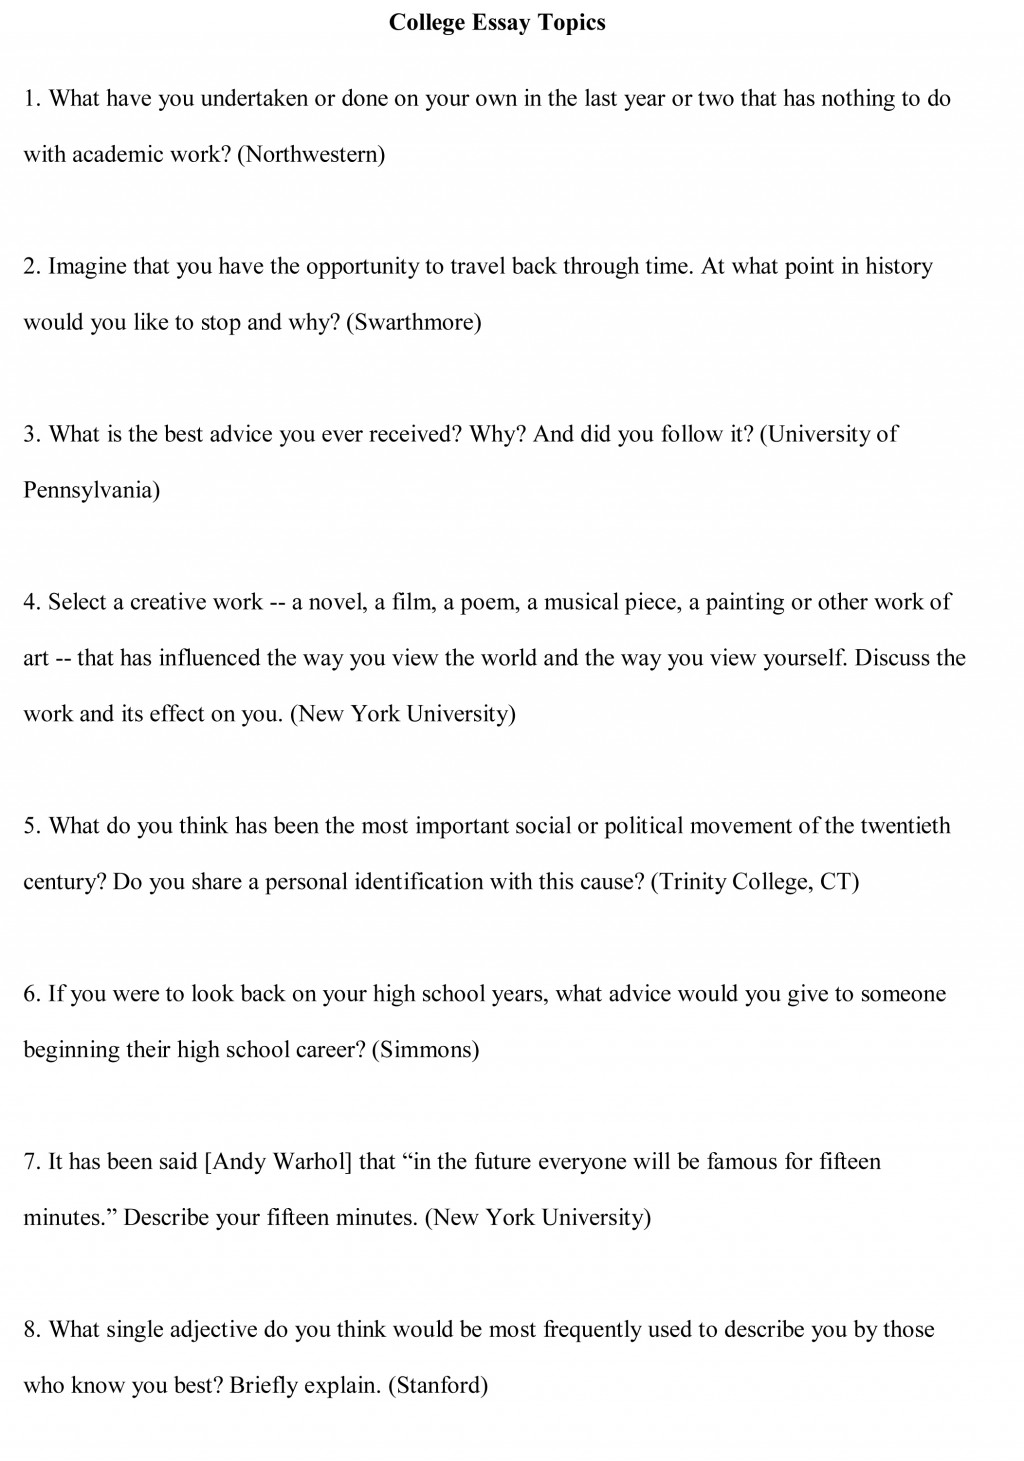 005 College Essay Prompt Examples Example Topics Free Unforgettable Uc #1 5 Large